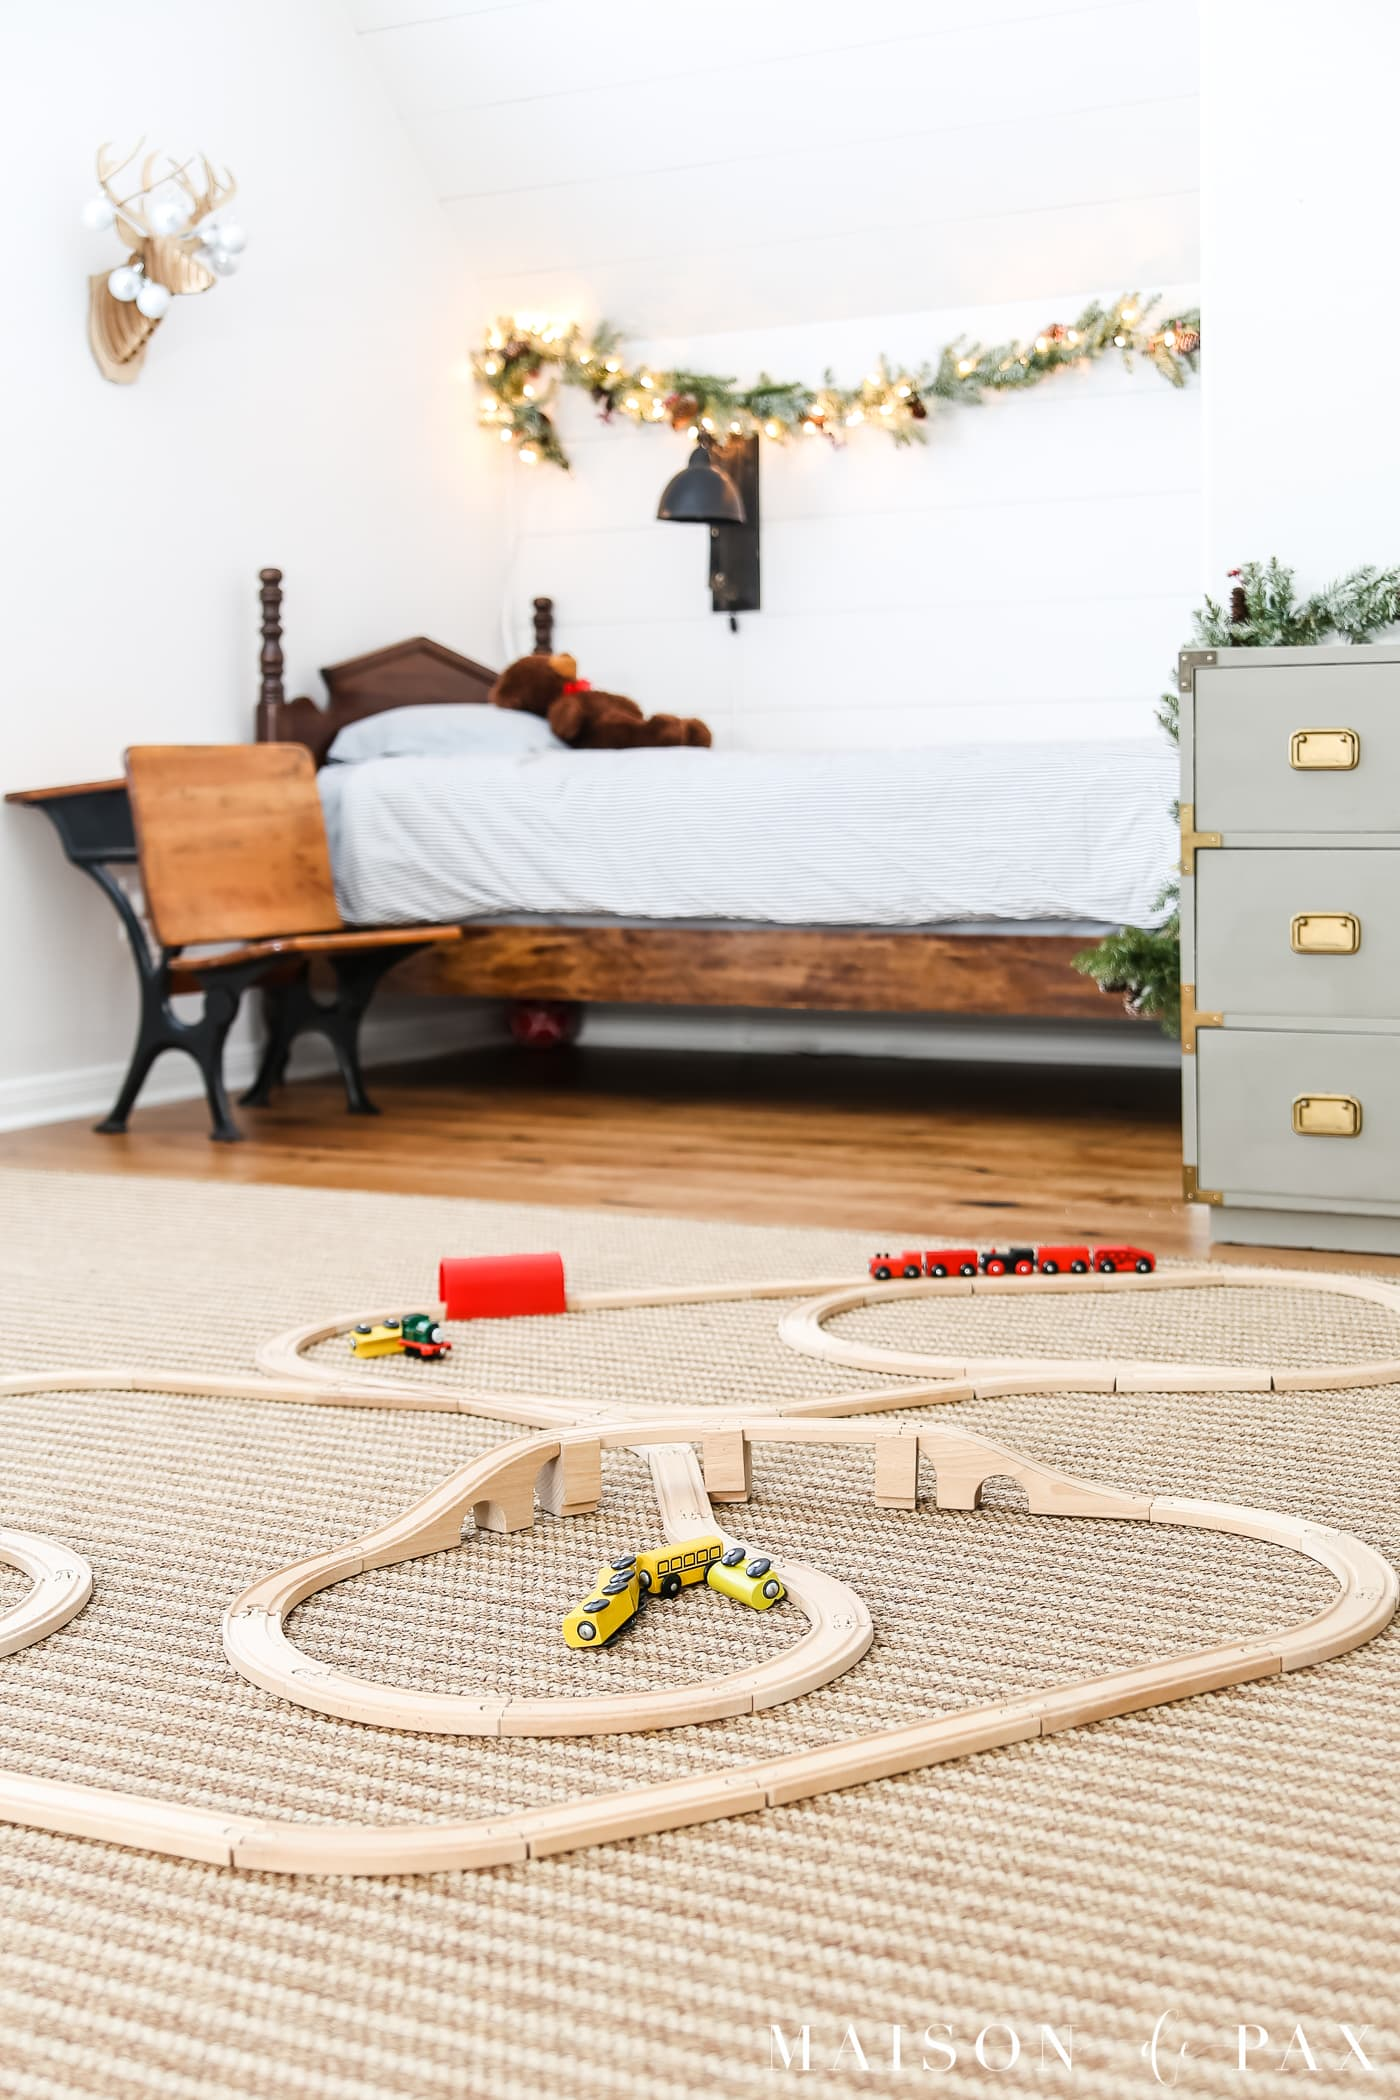 simple holiday decorations in a kid's room #kidChristmas